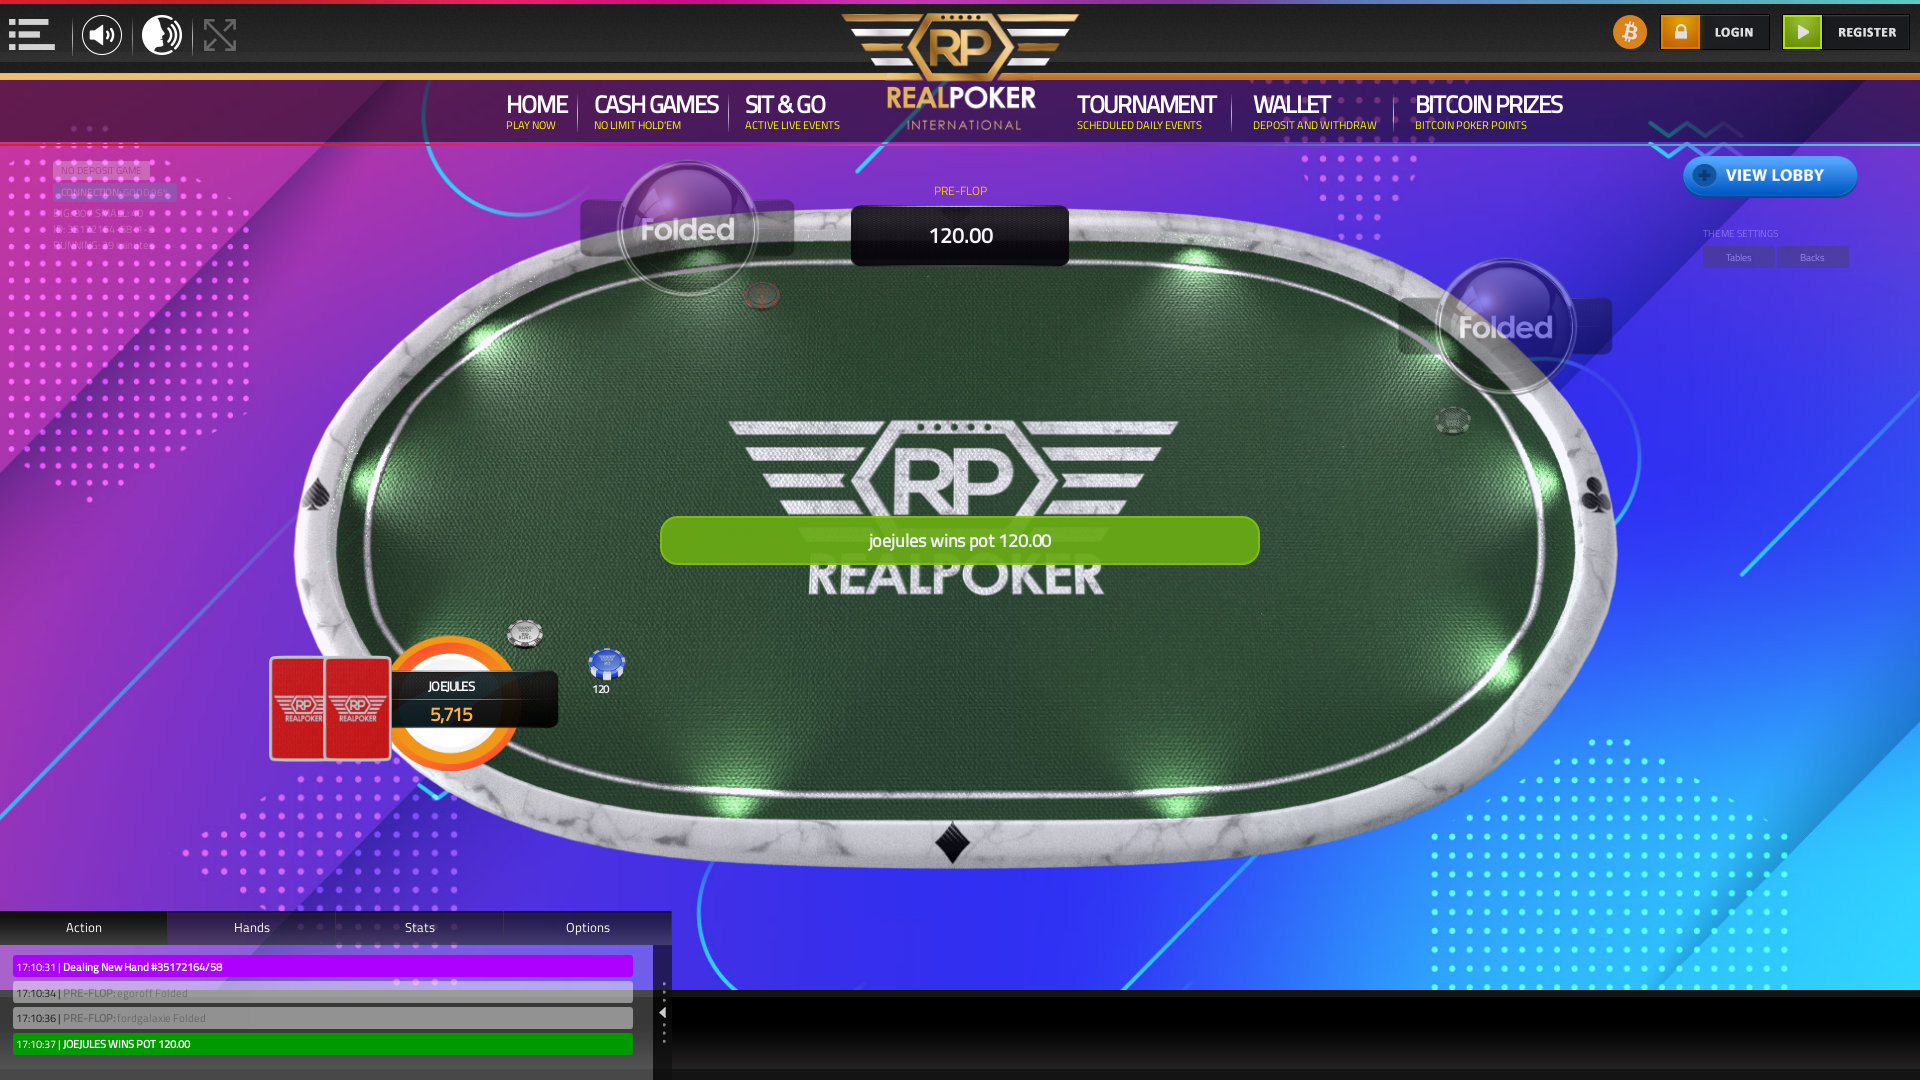 Netherlands online poker game on a 10 player table in the 29th minute of the match